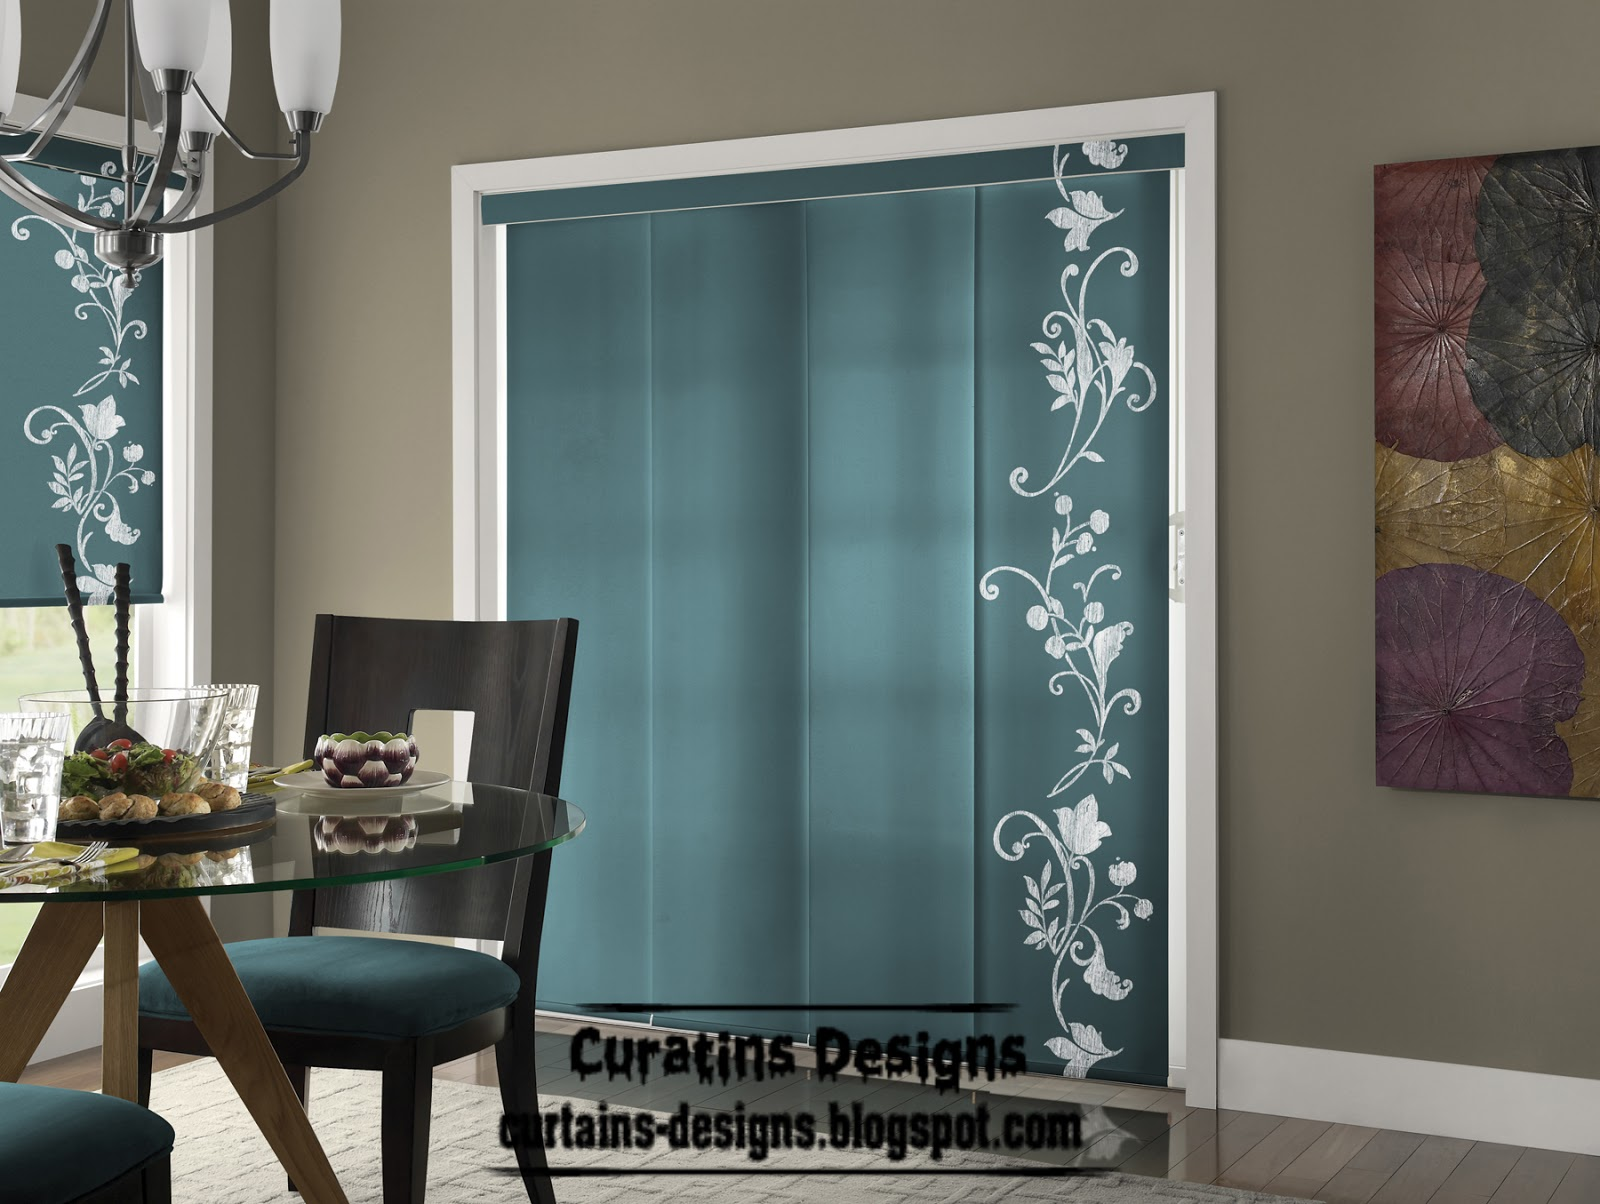 Turquoise panel curtain modern blinds design Curtains and blinds